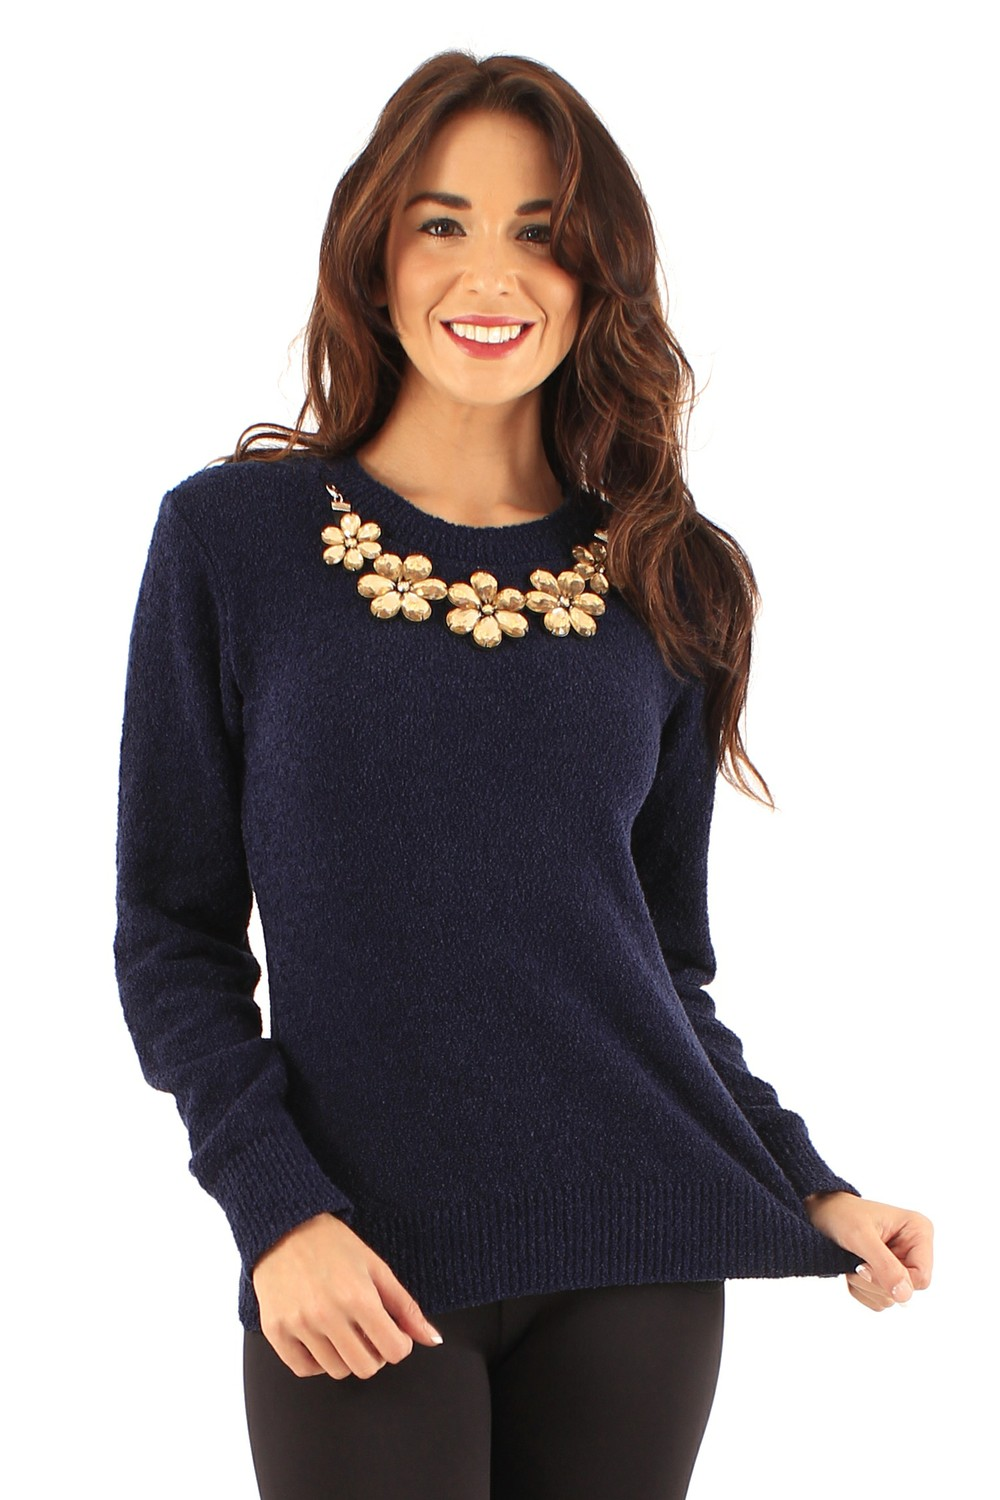 Dana Navy Embellished Flower Necklace Knit Jumper by Frocksville